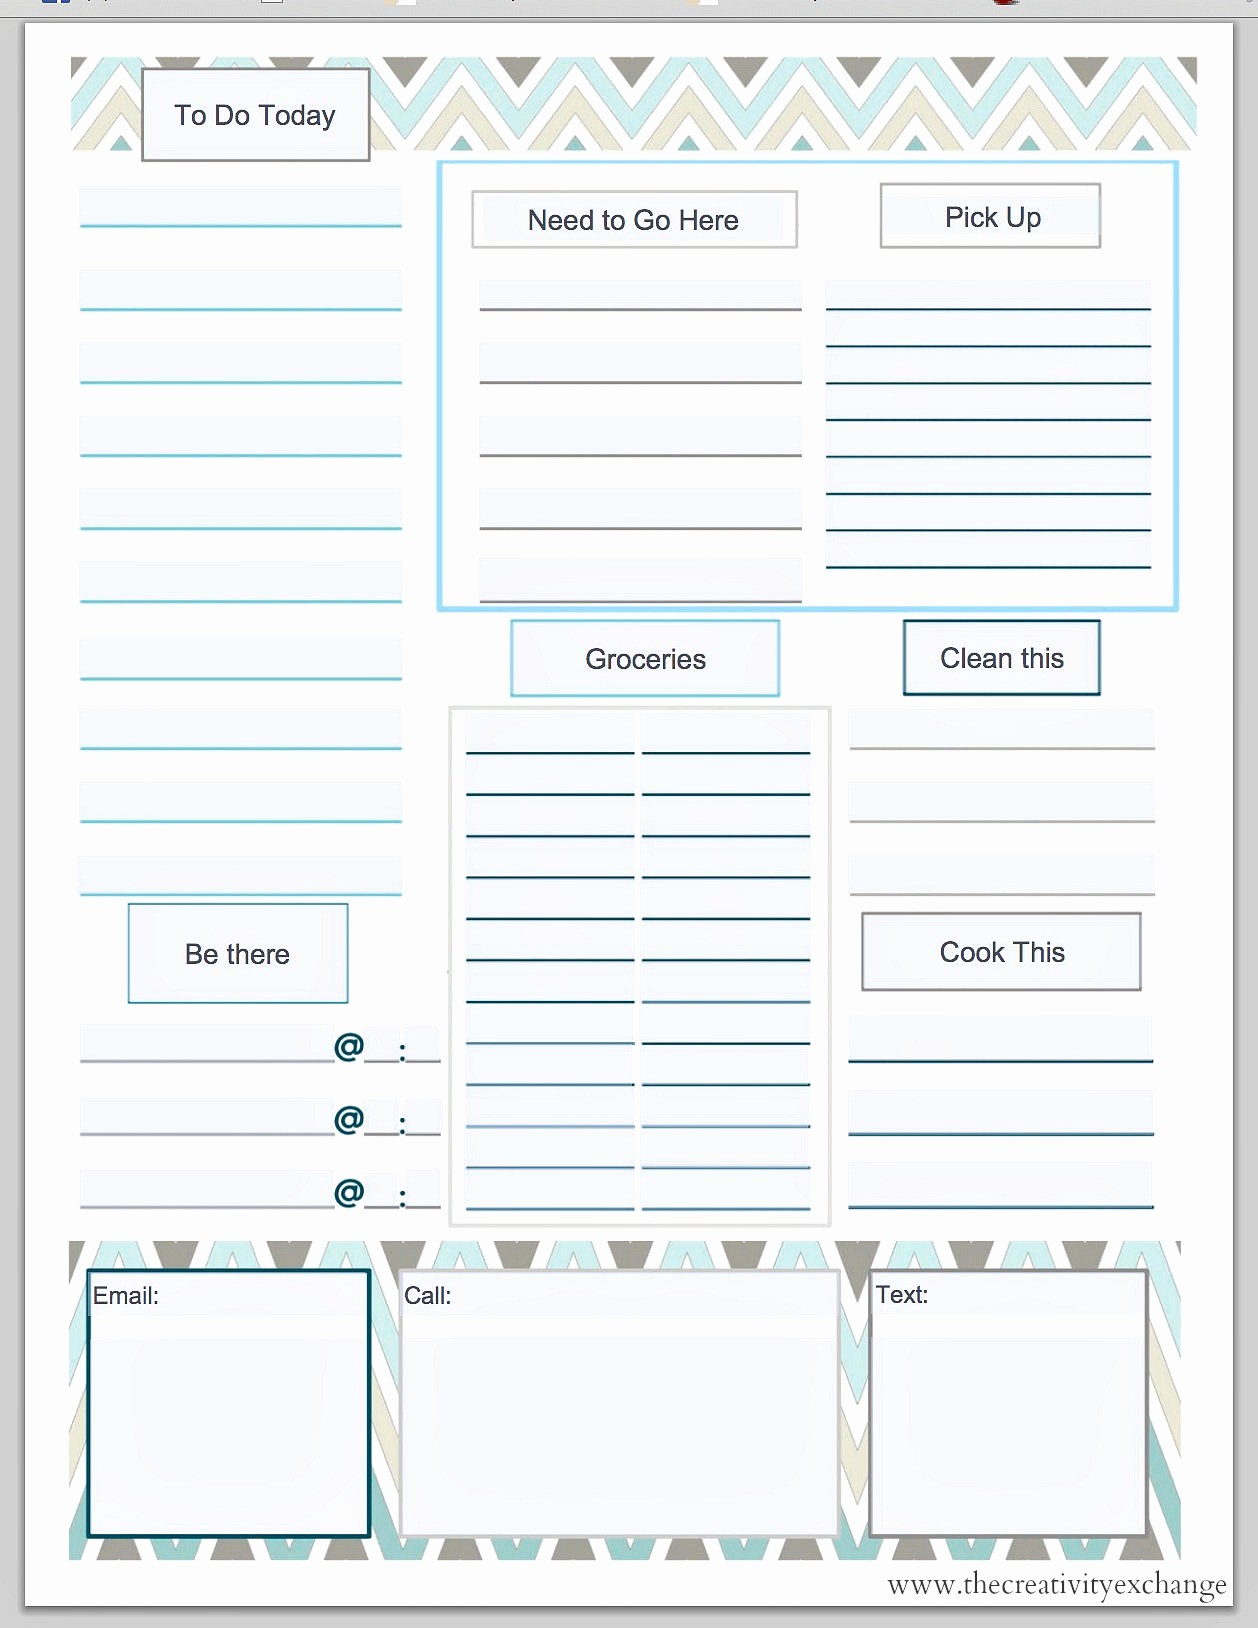 Editable to Do List Template Luxury Customizable and Free Printable to Do List that You Can Edit